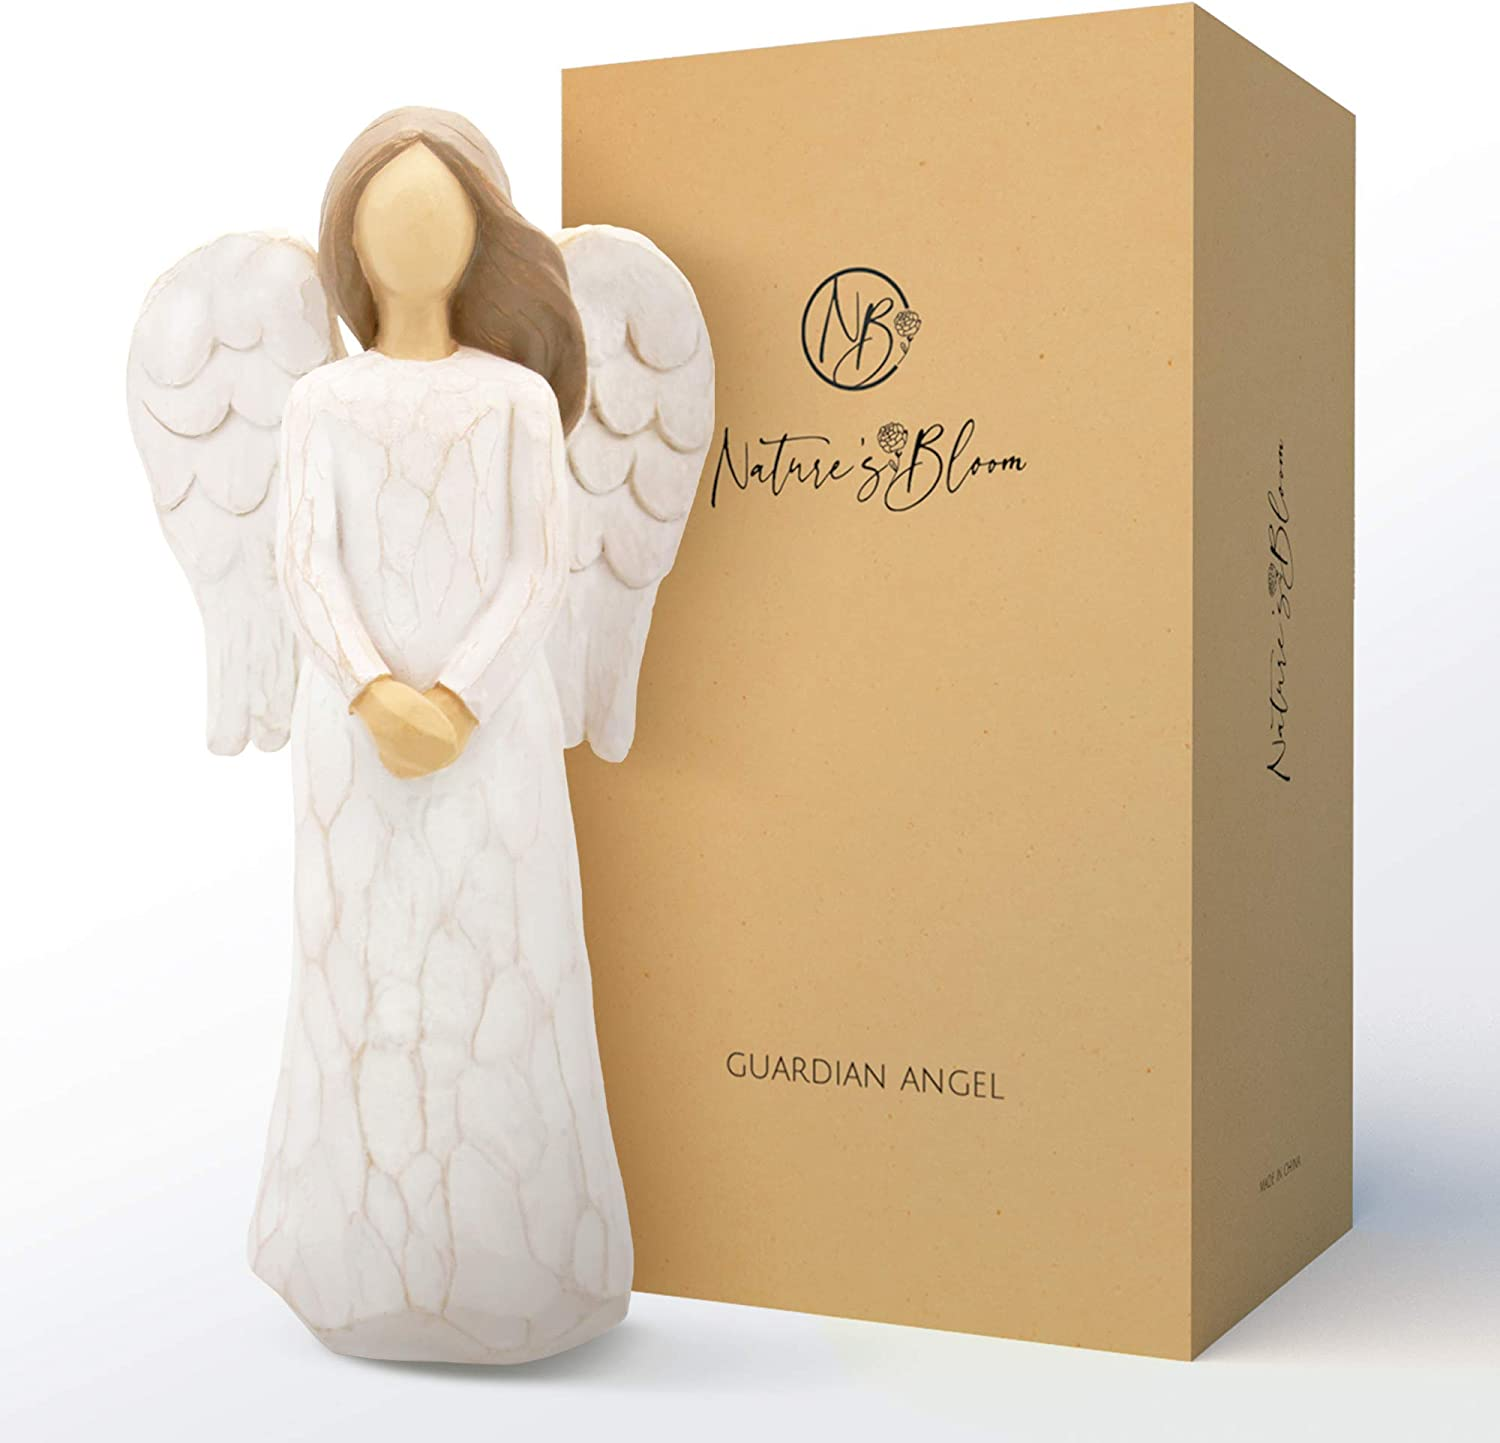 Guardian Angel Figurine for Women – Hand Carved with Gift Box, Guardian Angel Collectible Figurine - Encouragement Present- Gift to Show Love, Sympathy, Gratitude, Bereavement, Friendship or Prayer